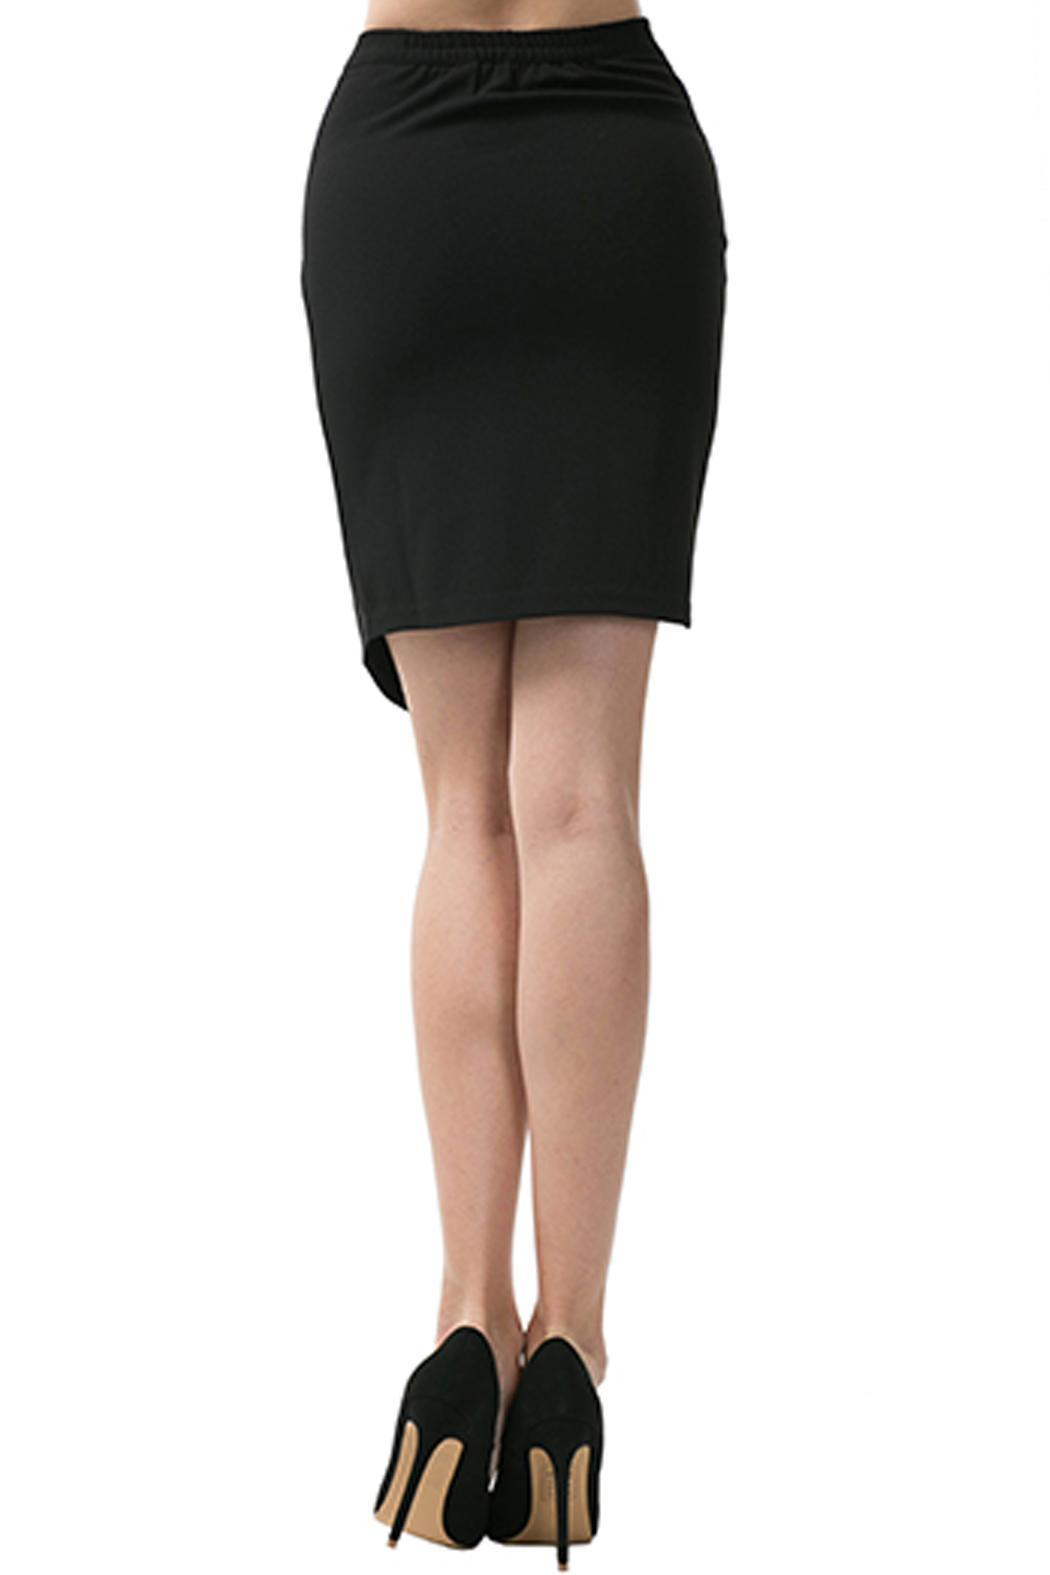 Caribbean Queen Origami Pencil Skirt - Back Cropped Image